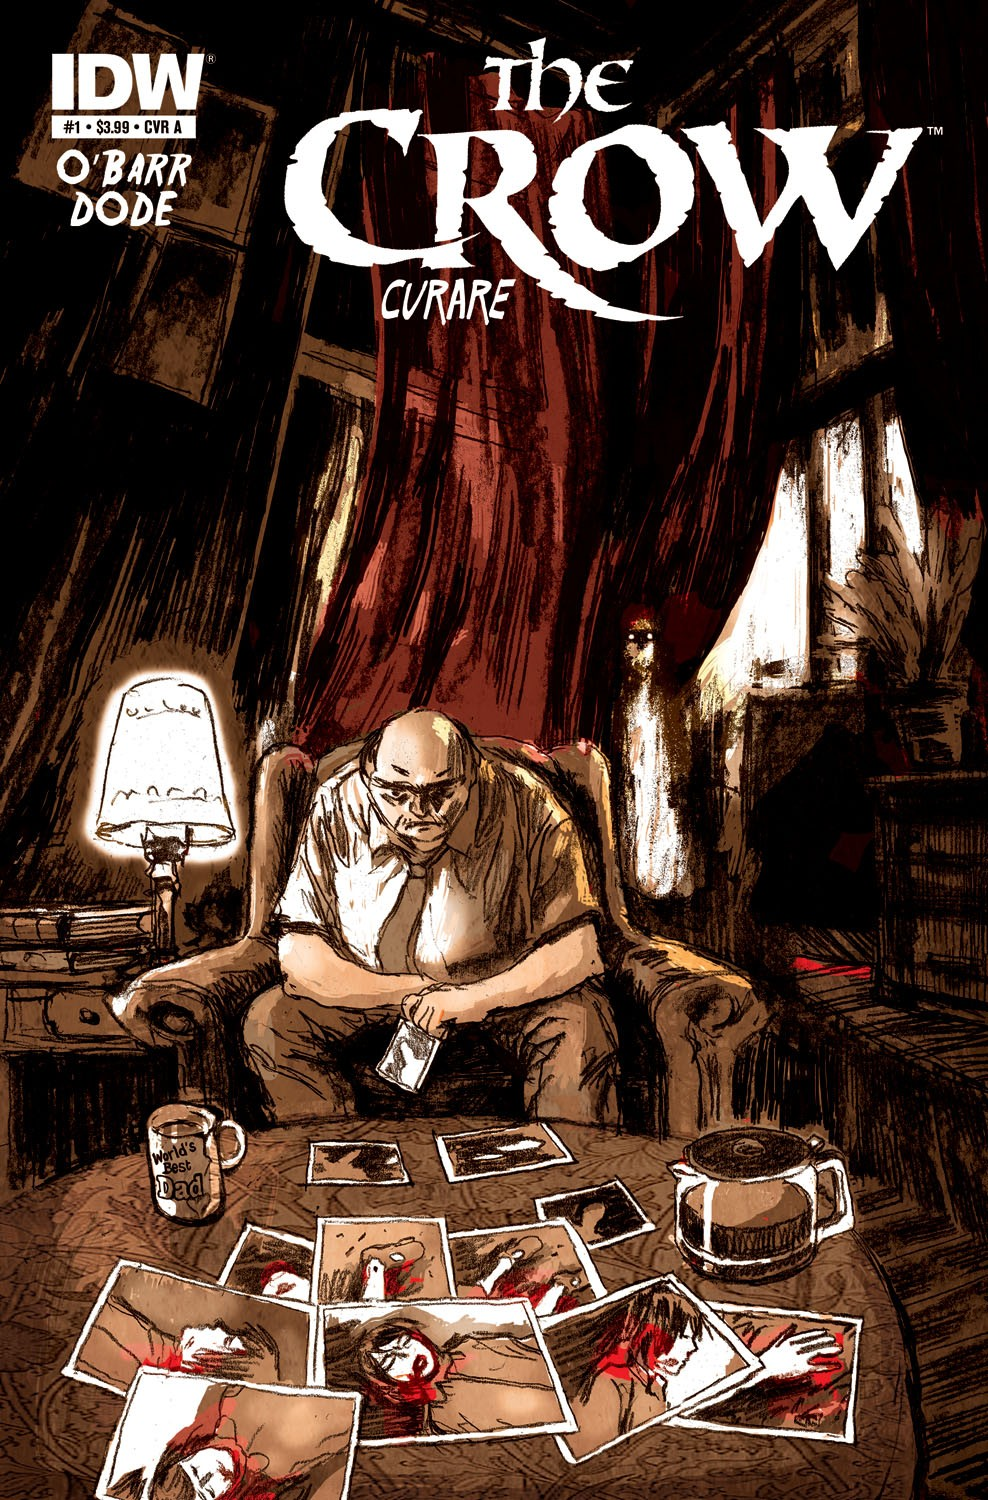 IDW THE CROW CURARE 1 COVER B